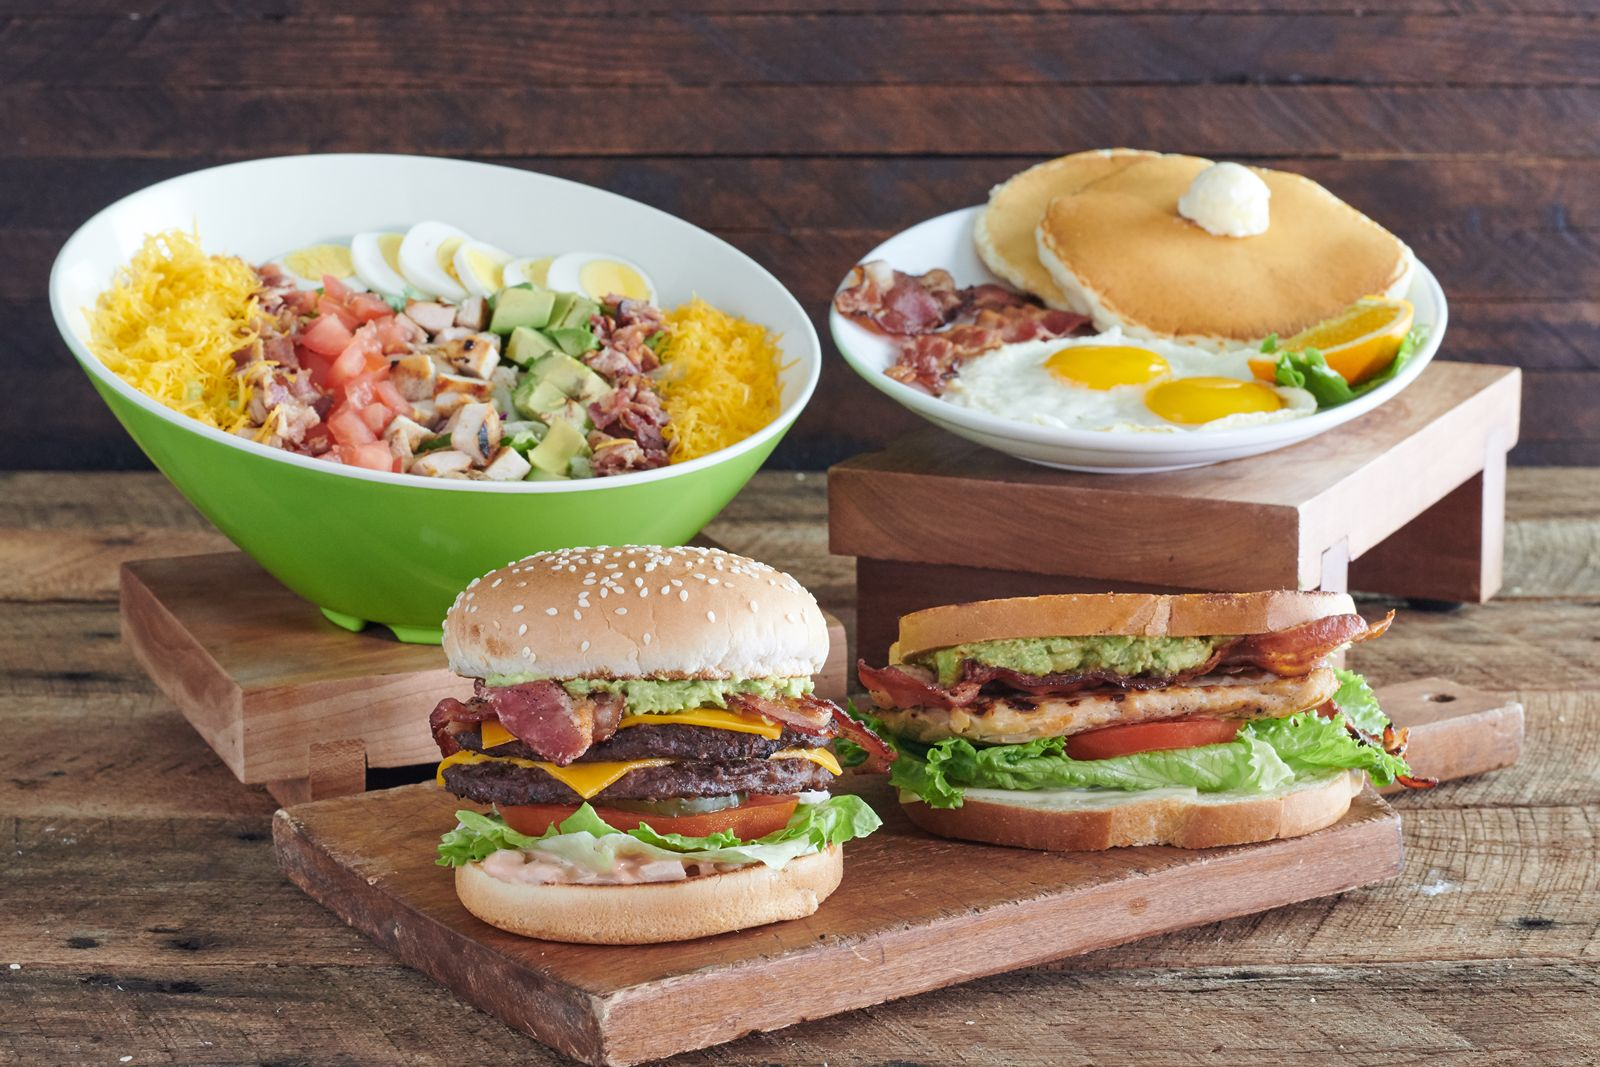 Farmer Boys® is celebrating the Grand Opening of its new location in Huntington Beach, Calif. on Friday, Nov. 6 and Saturday, Nov. 7 at 6962 Edinger Avenue.